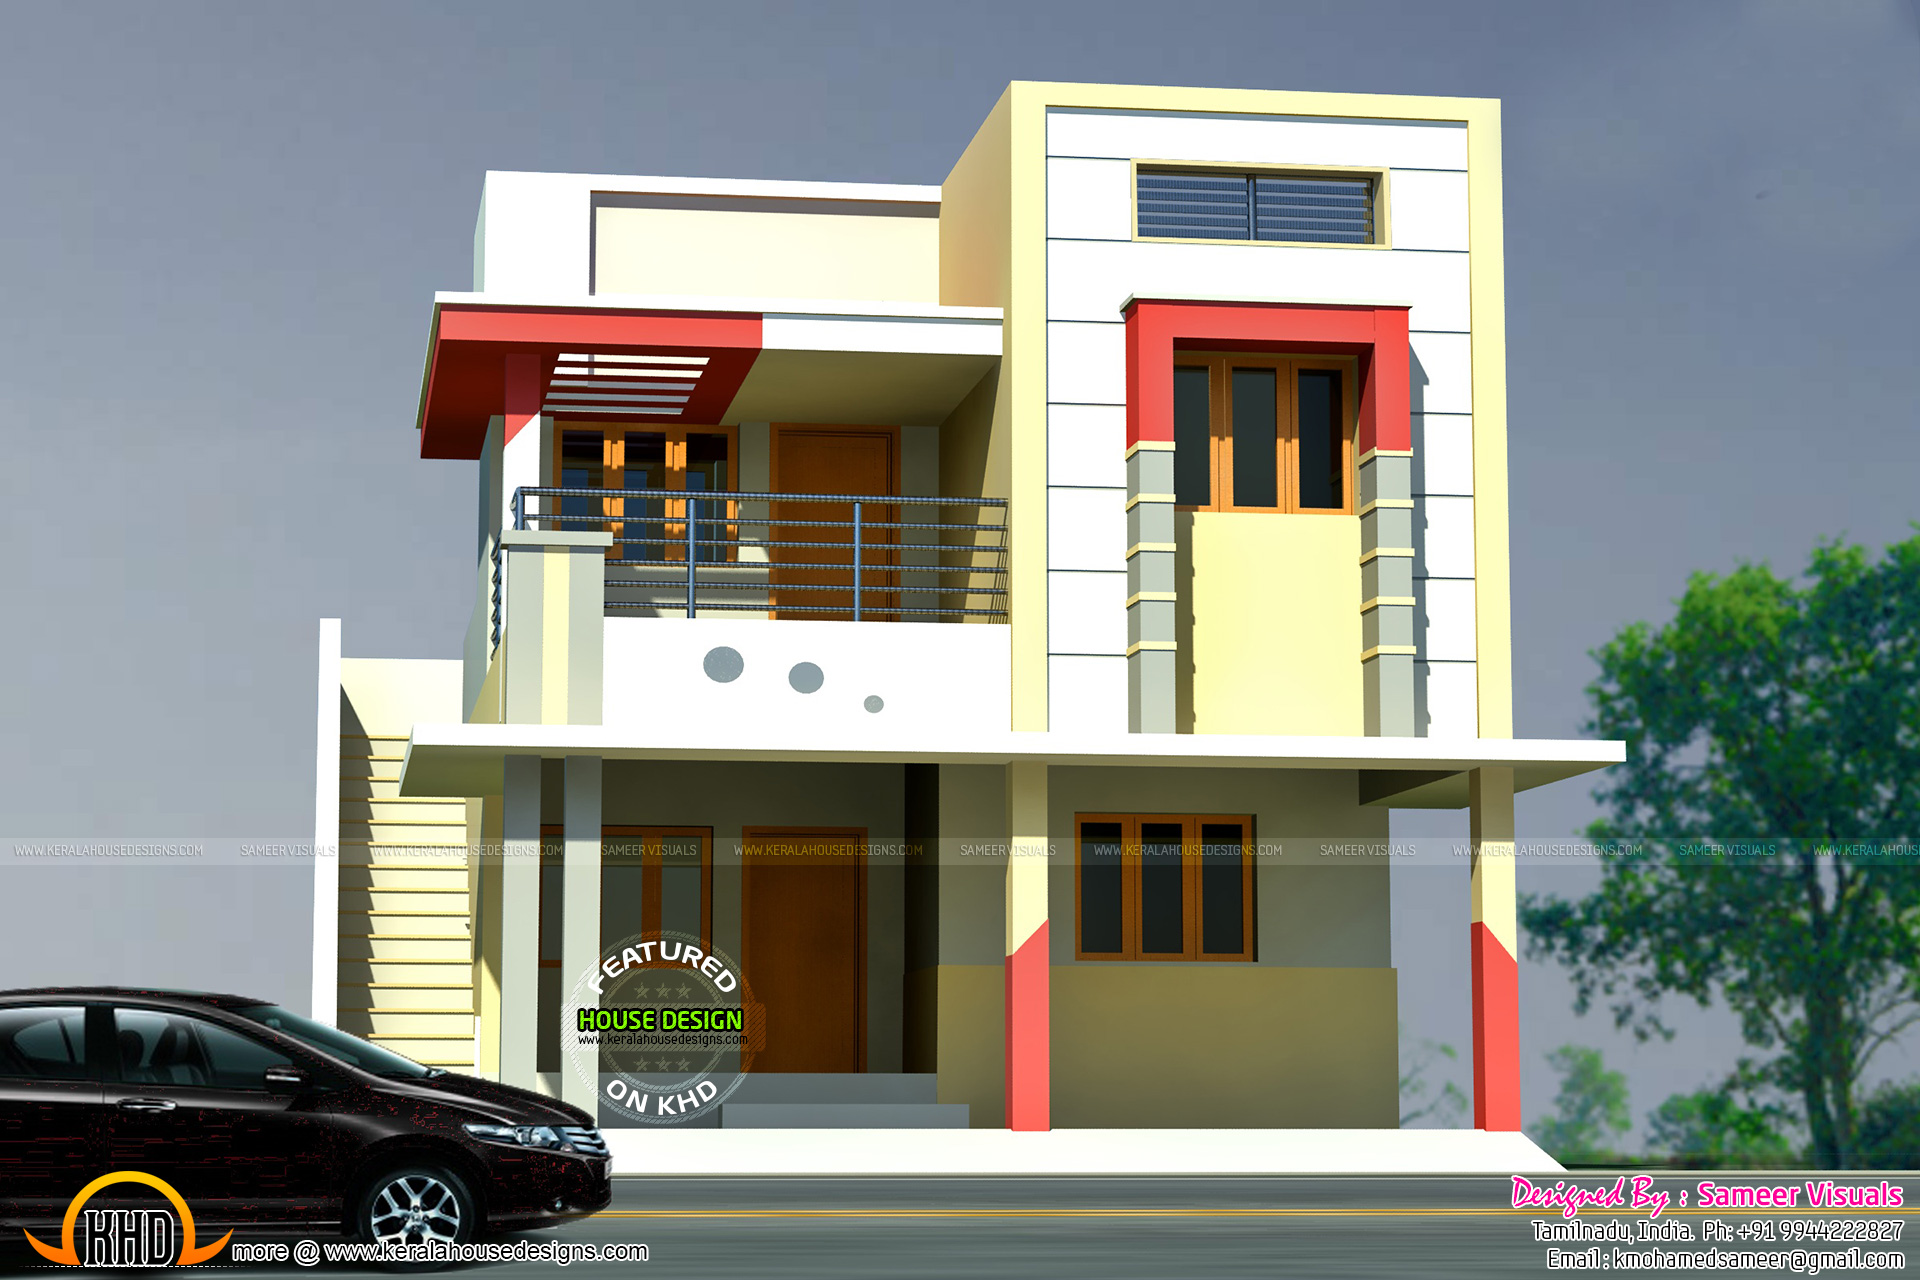 700 sq ft house plans in india - House interior